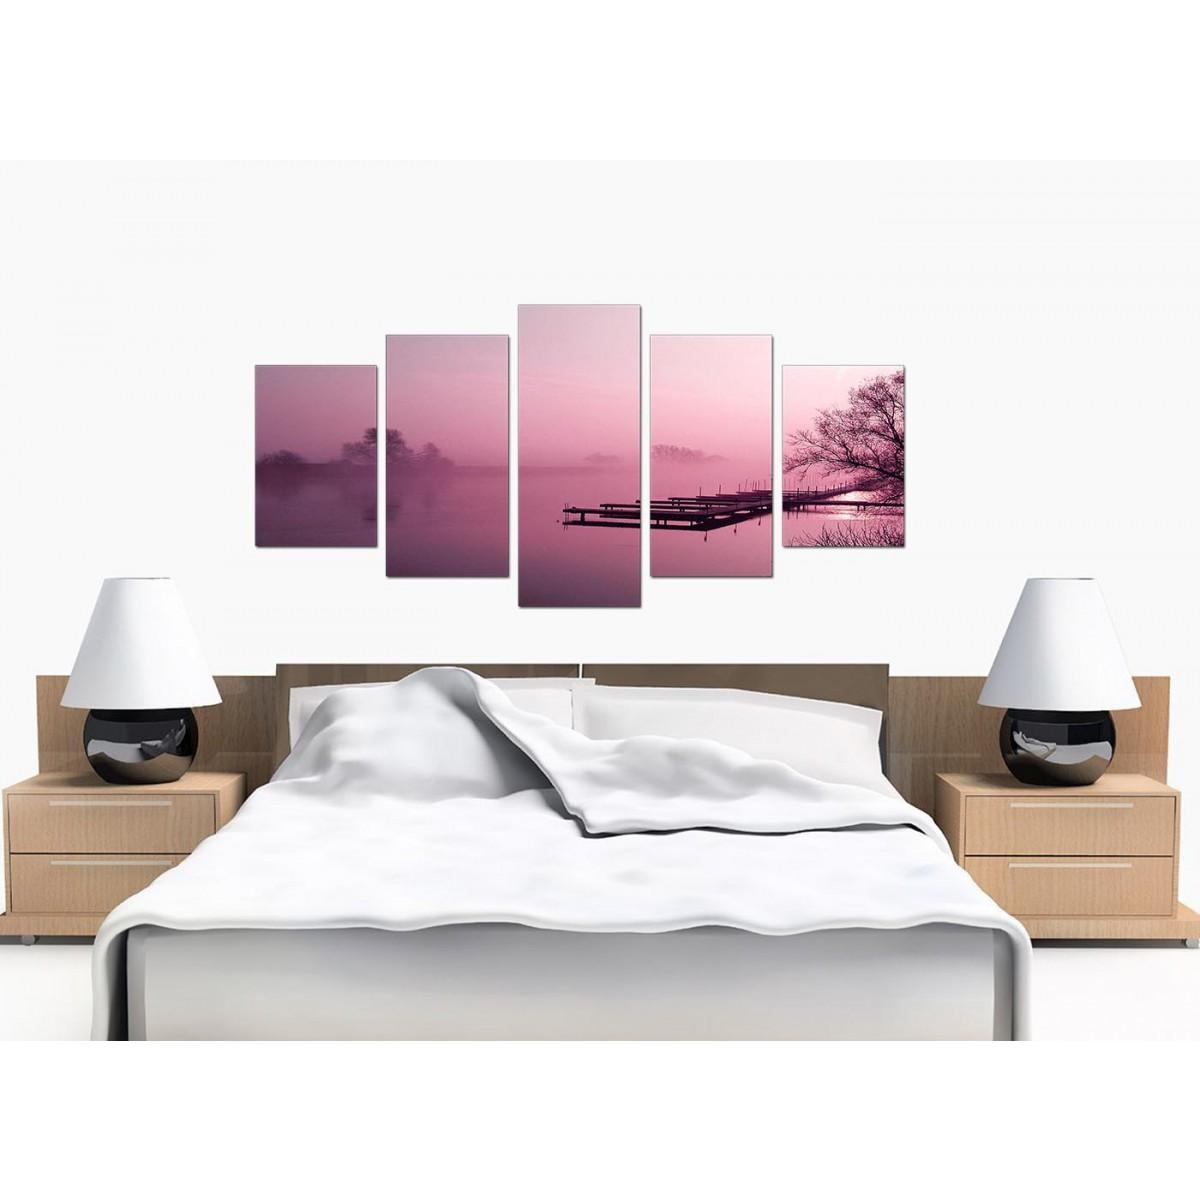 Extra Large River Landscape Canvas Wall Art 5 Panel In Plum Throughout Plum Coloured Wall Art (View 4 of 20)